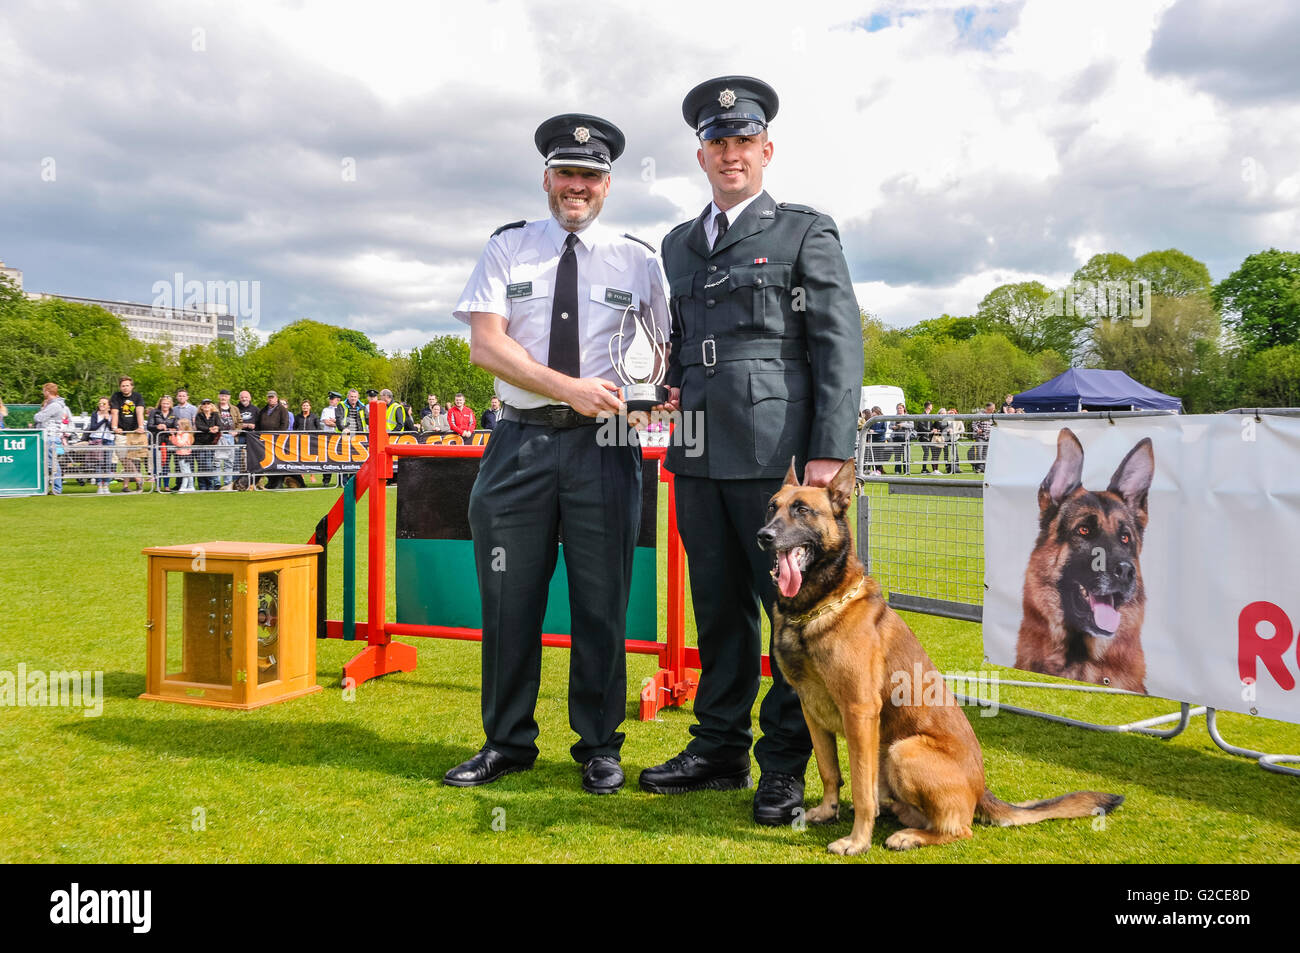 BELFAST, NORTHERN IRELAND. 22 MAY 2016 - PD Mike from the PSNI, with his handler Constable McCrea, is declared overall - Stock Image